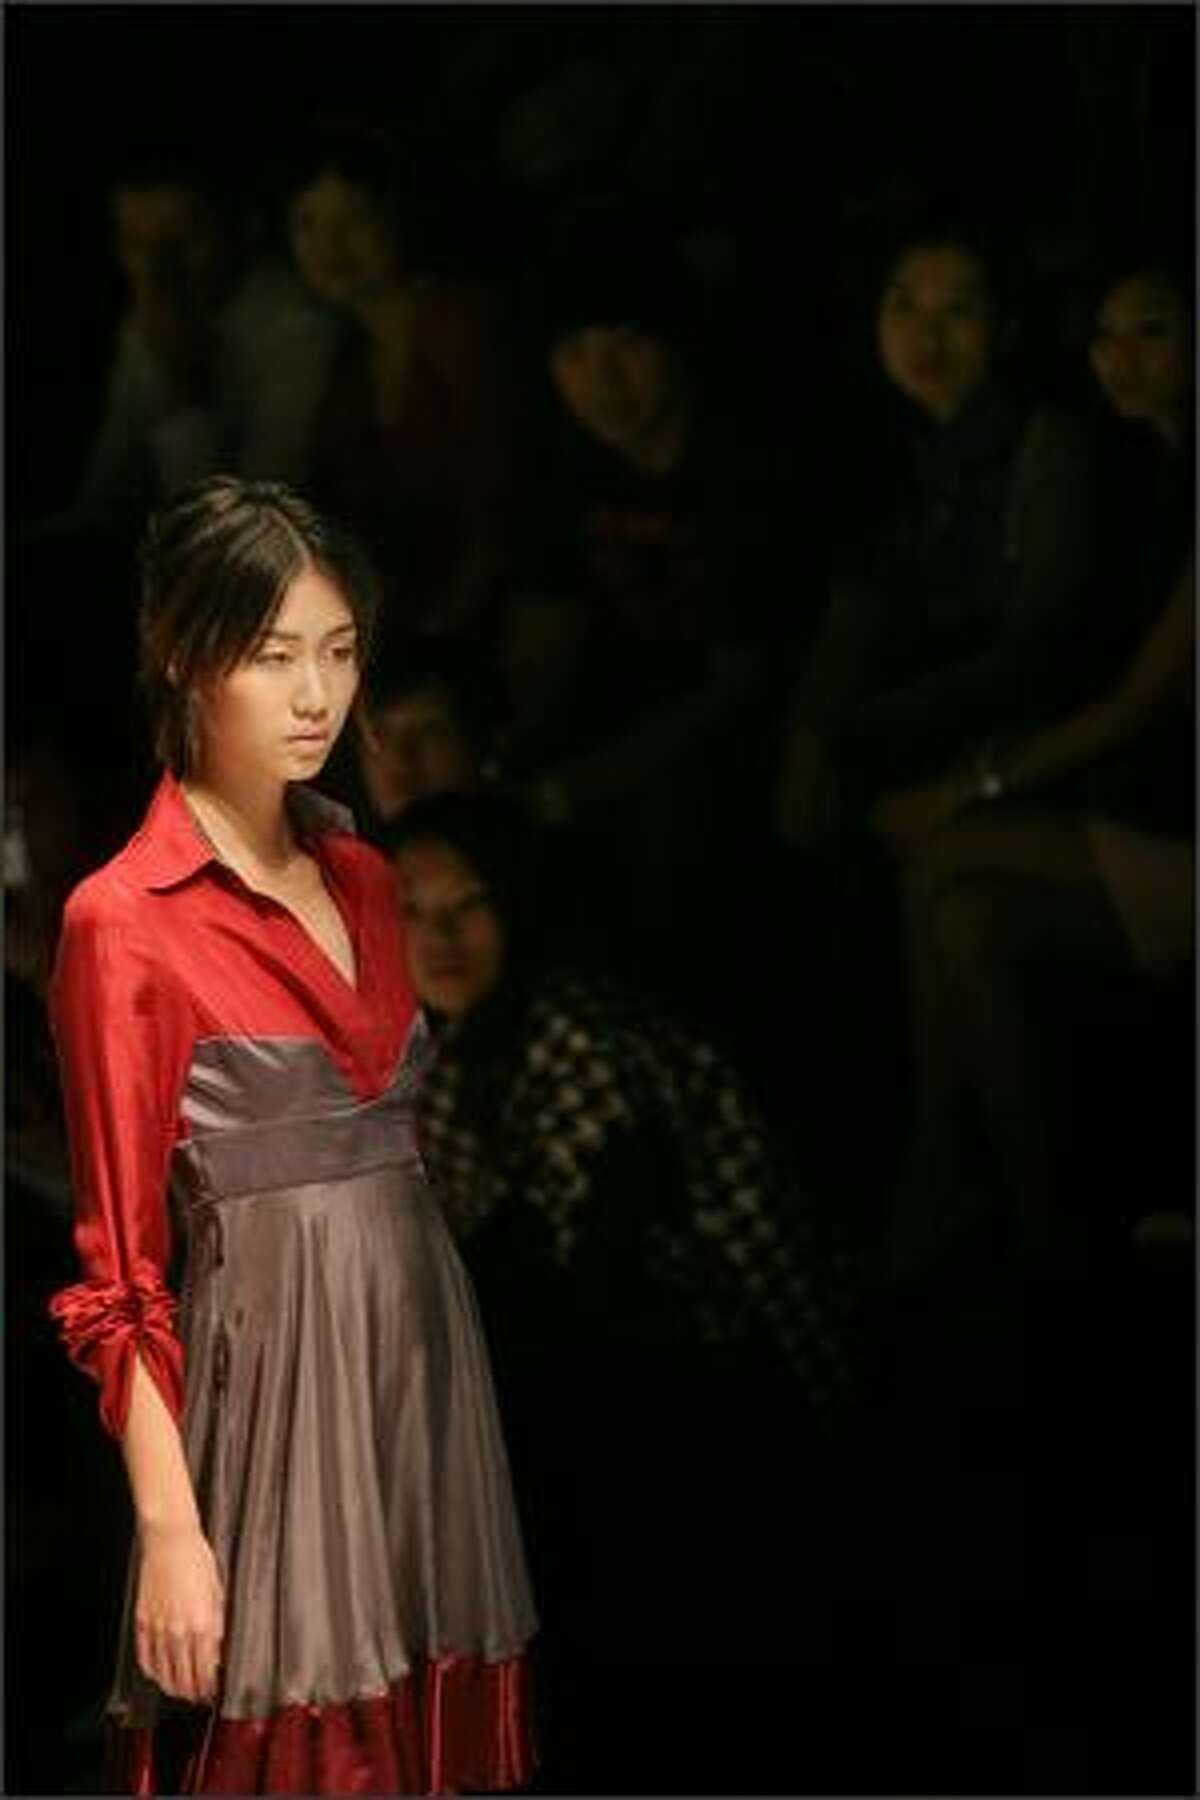 A model walks the runway during the fashion show of Turkish designer Bora Aksu at the 2007 Shanghai Fashion Week on October 30, 2007 in Shanghai, China.